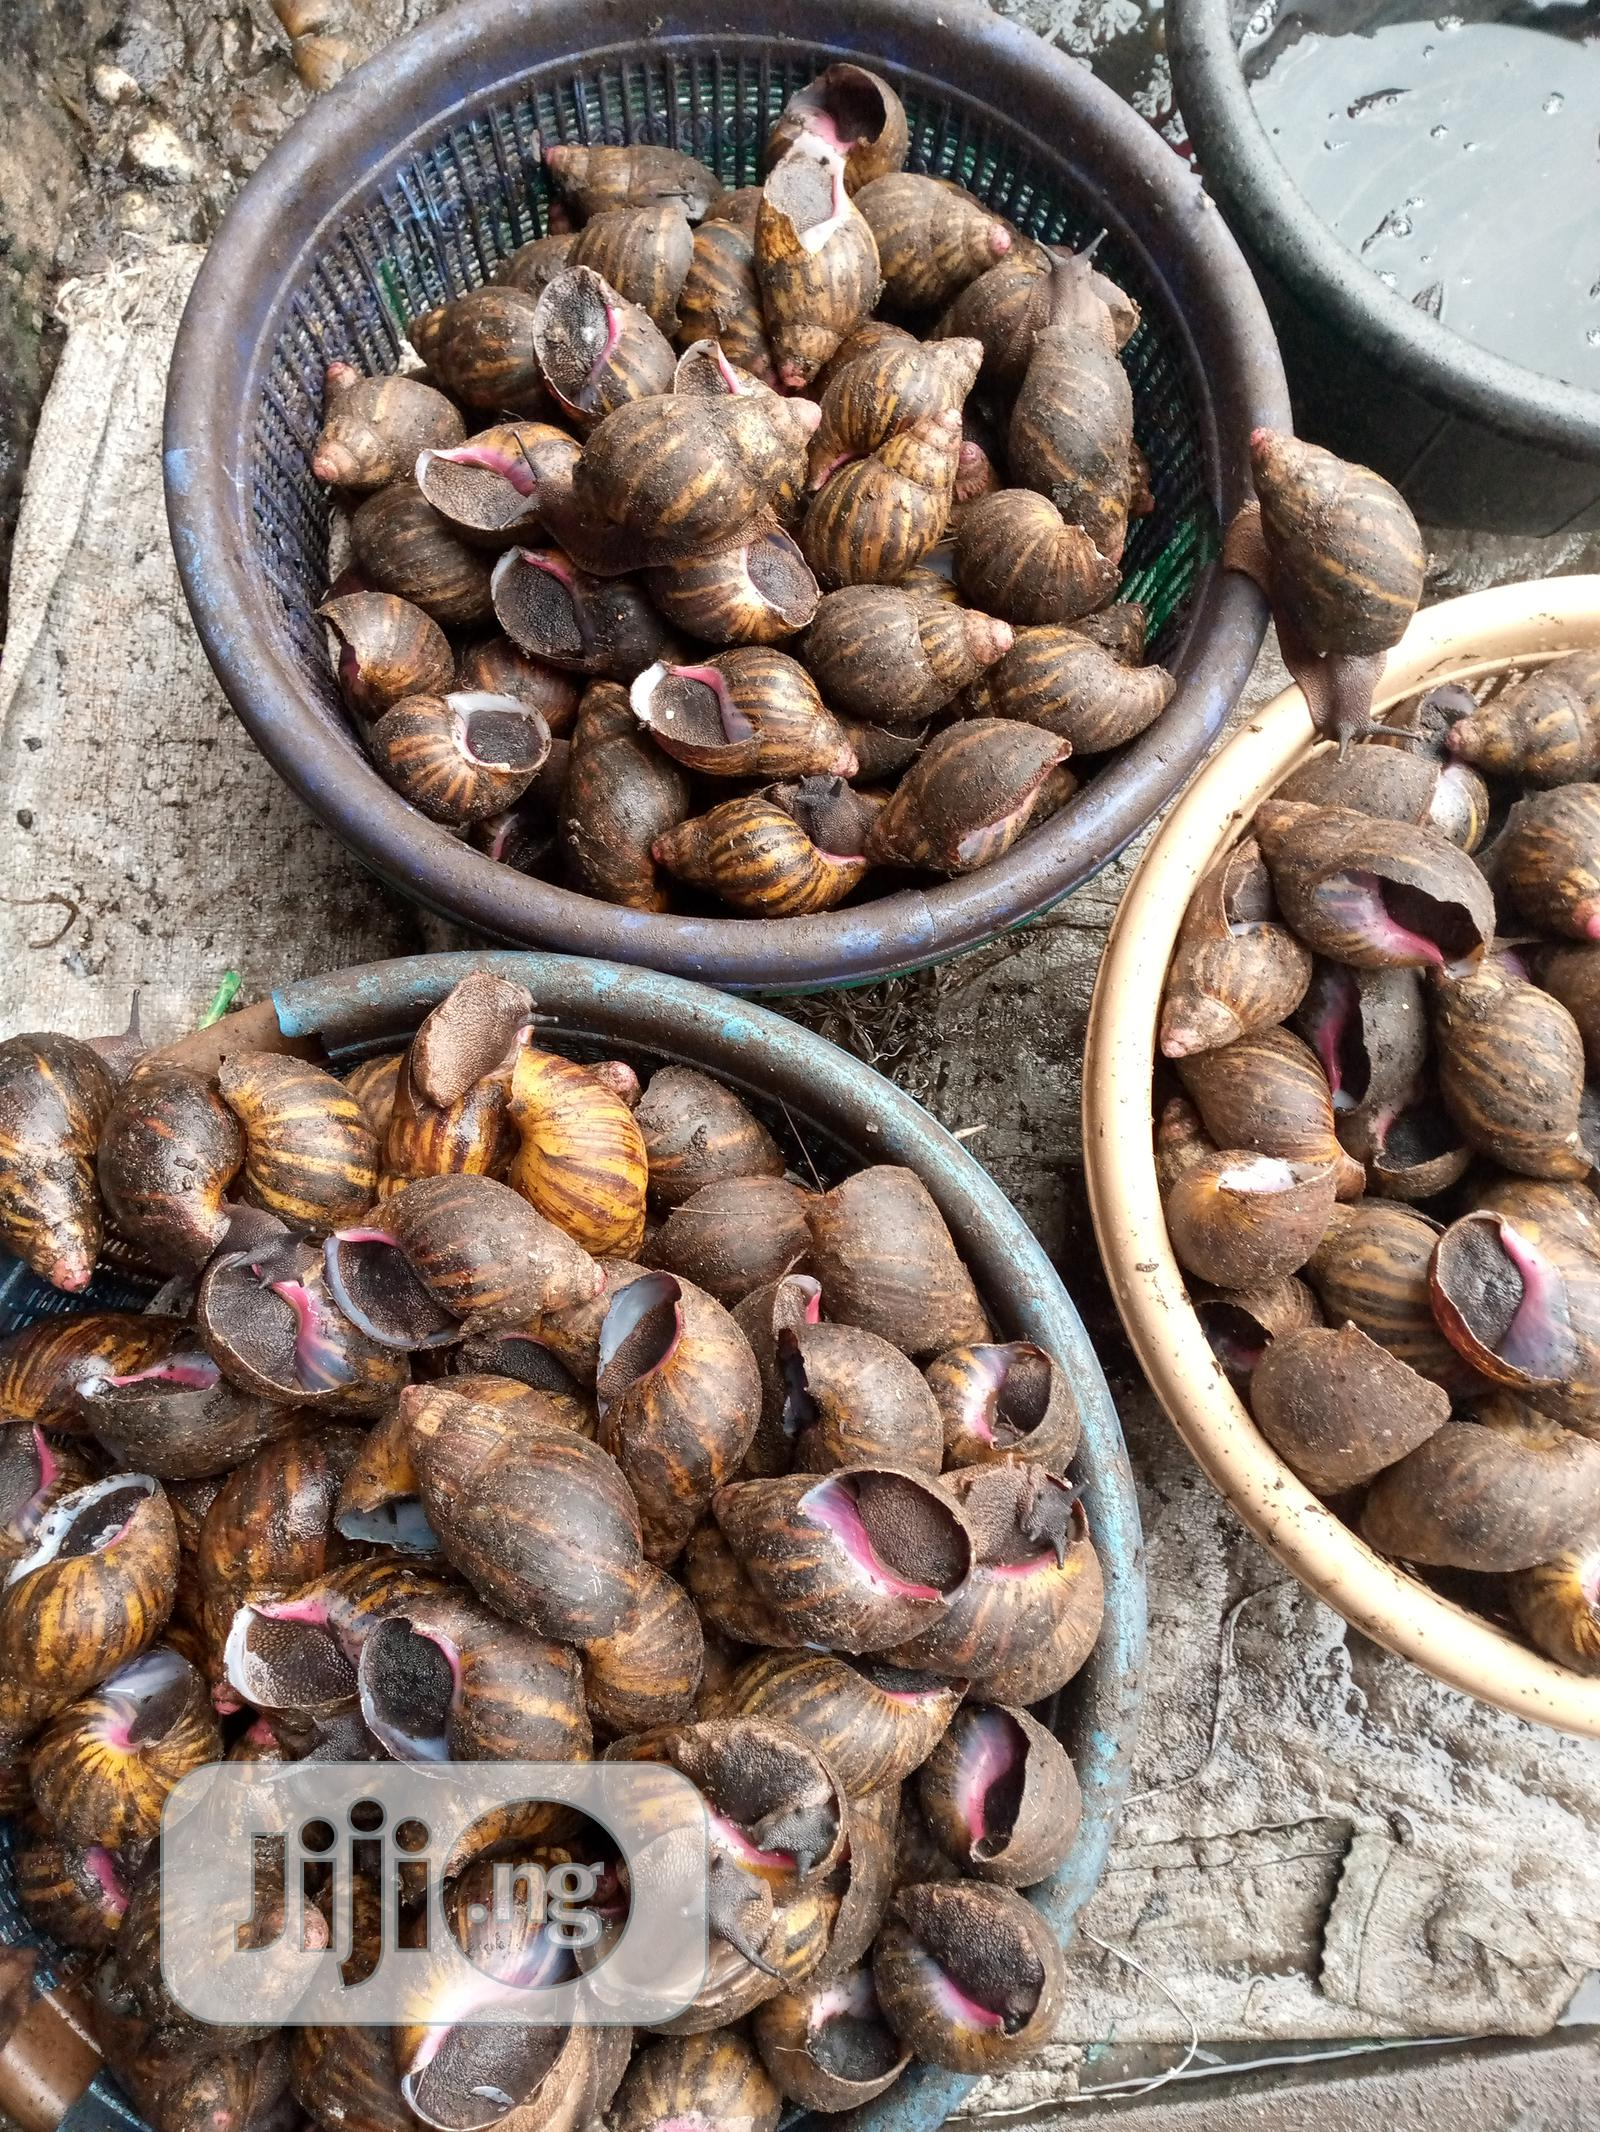 Cheap Snails   Other Animals for sale in Udu, Delta State, Nigeria